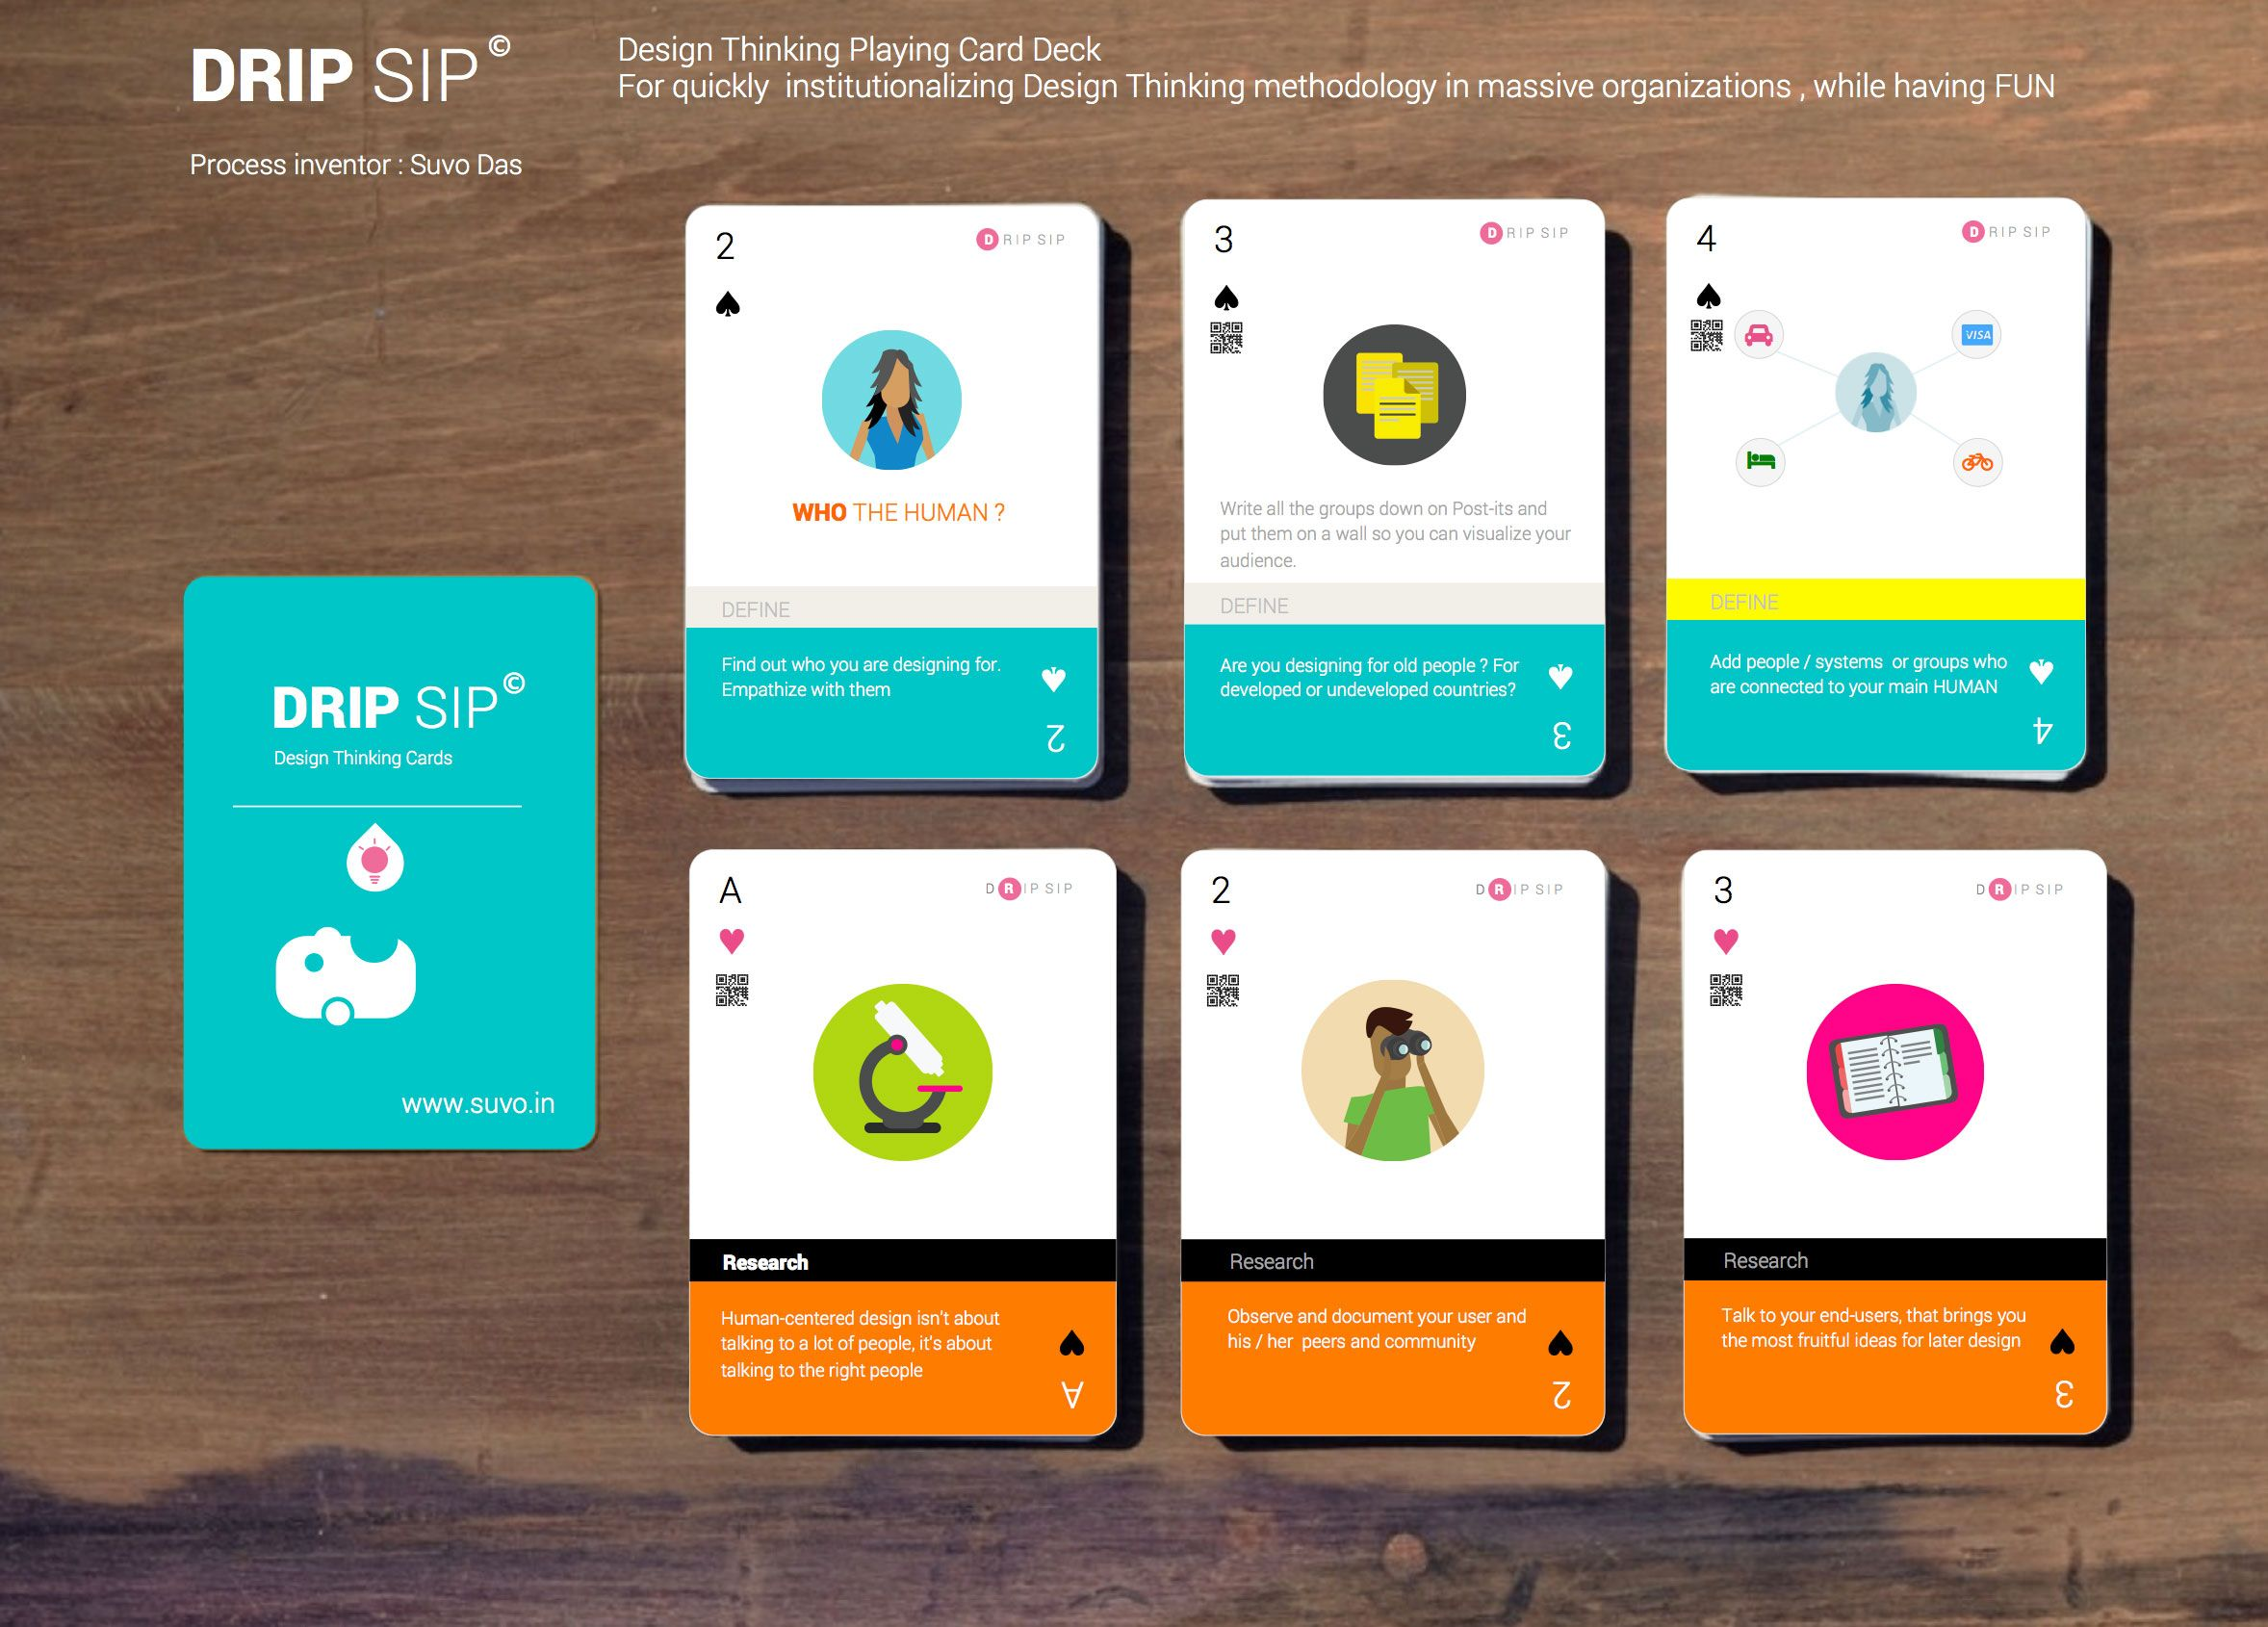 DRIP SIP Design Thinking Playing Card Deck A Process